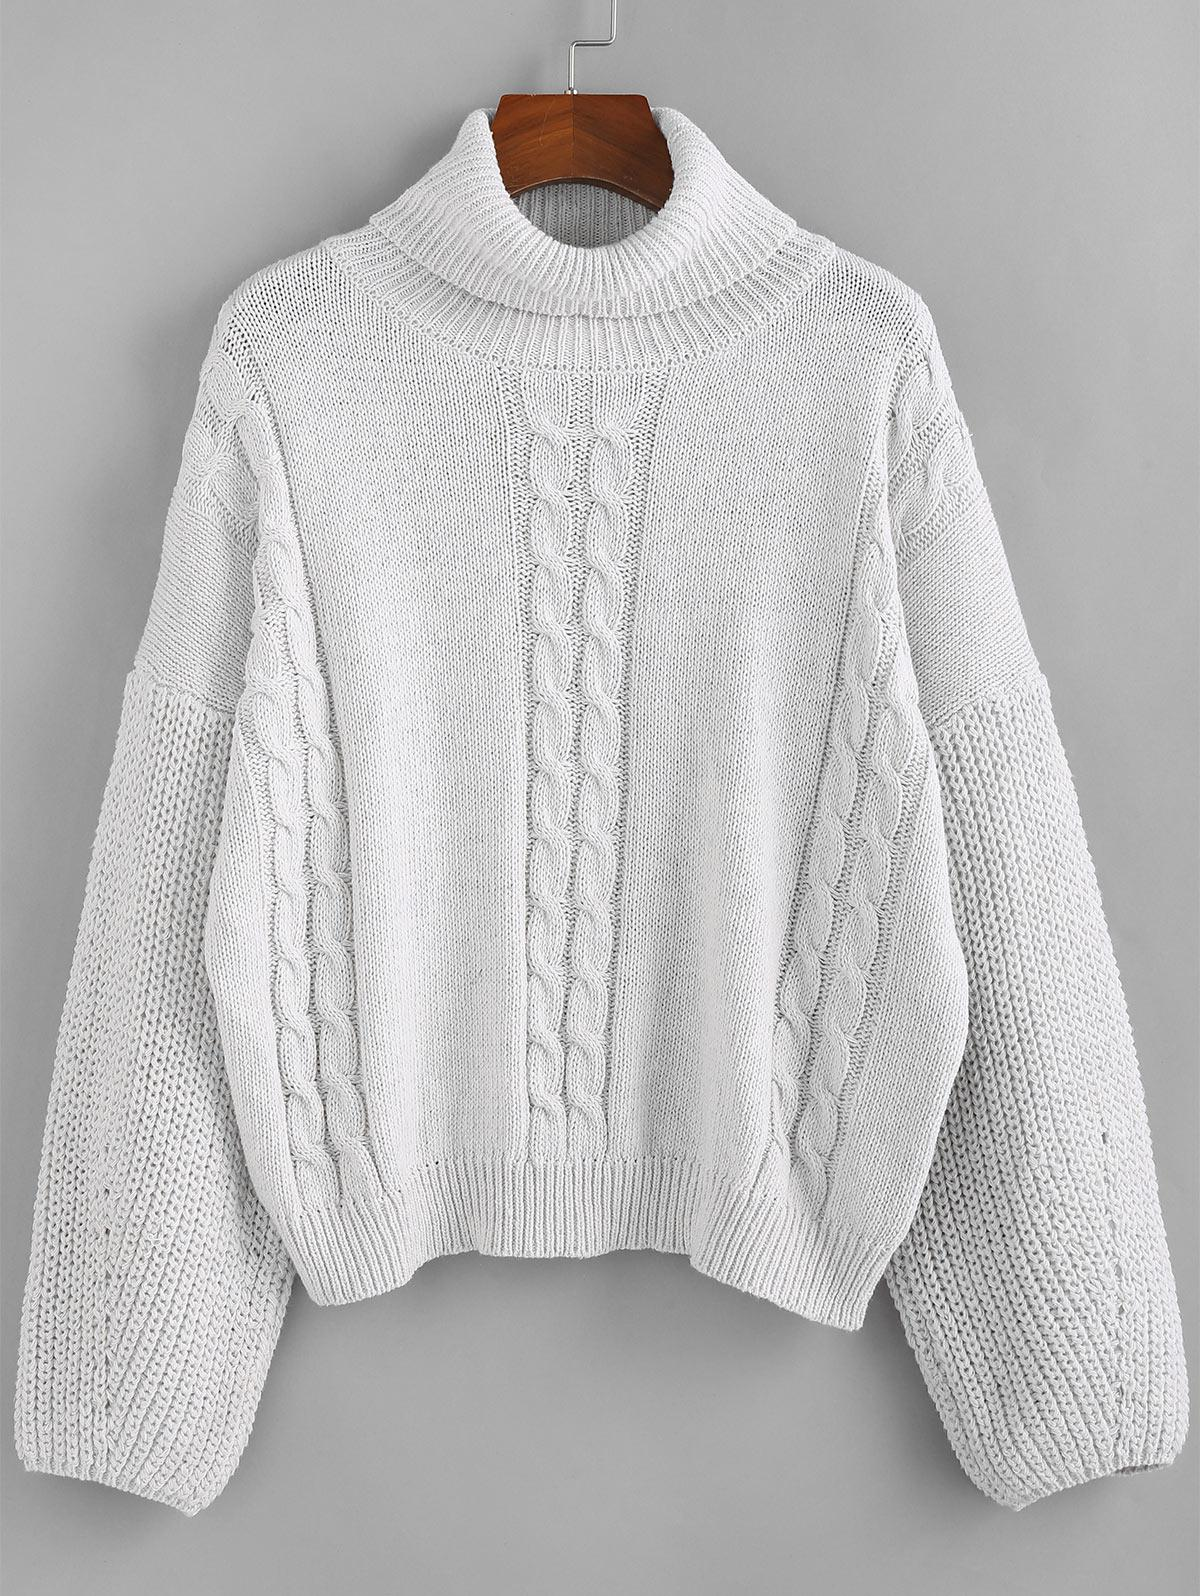 ZAFUL Cable Knit Turtleneck Sweater